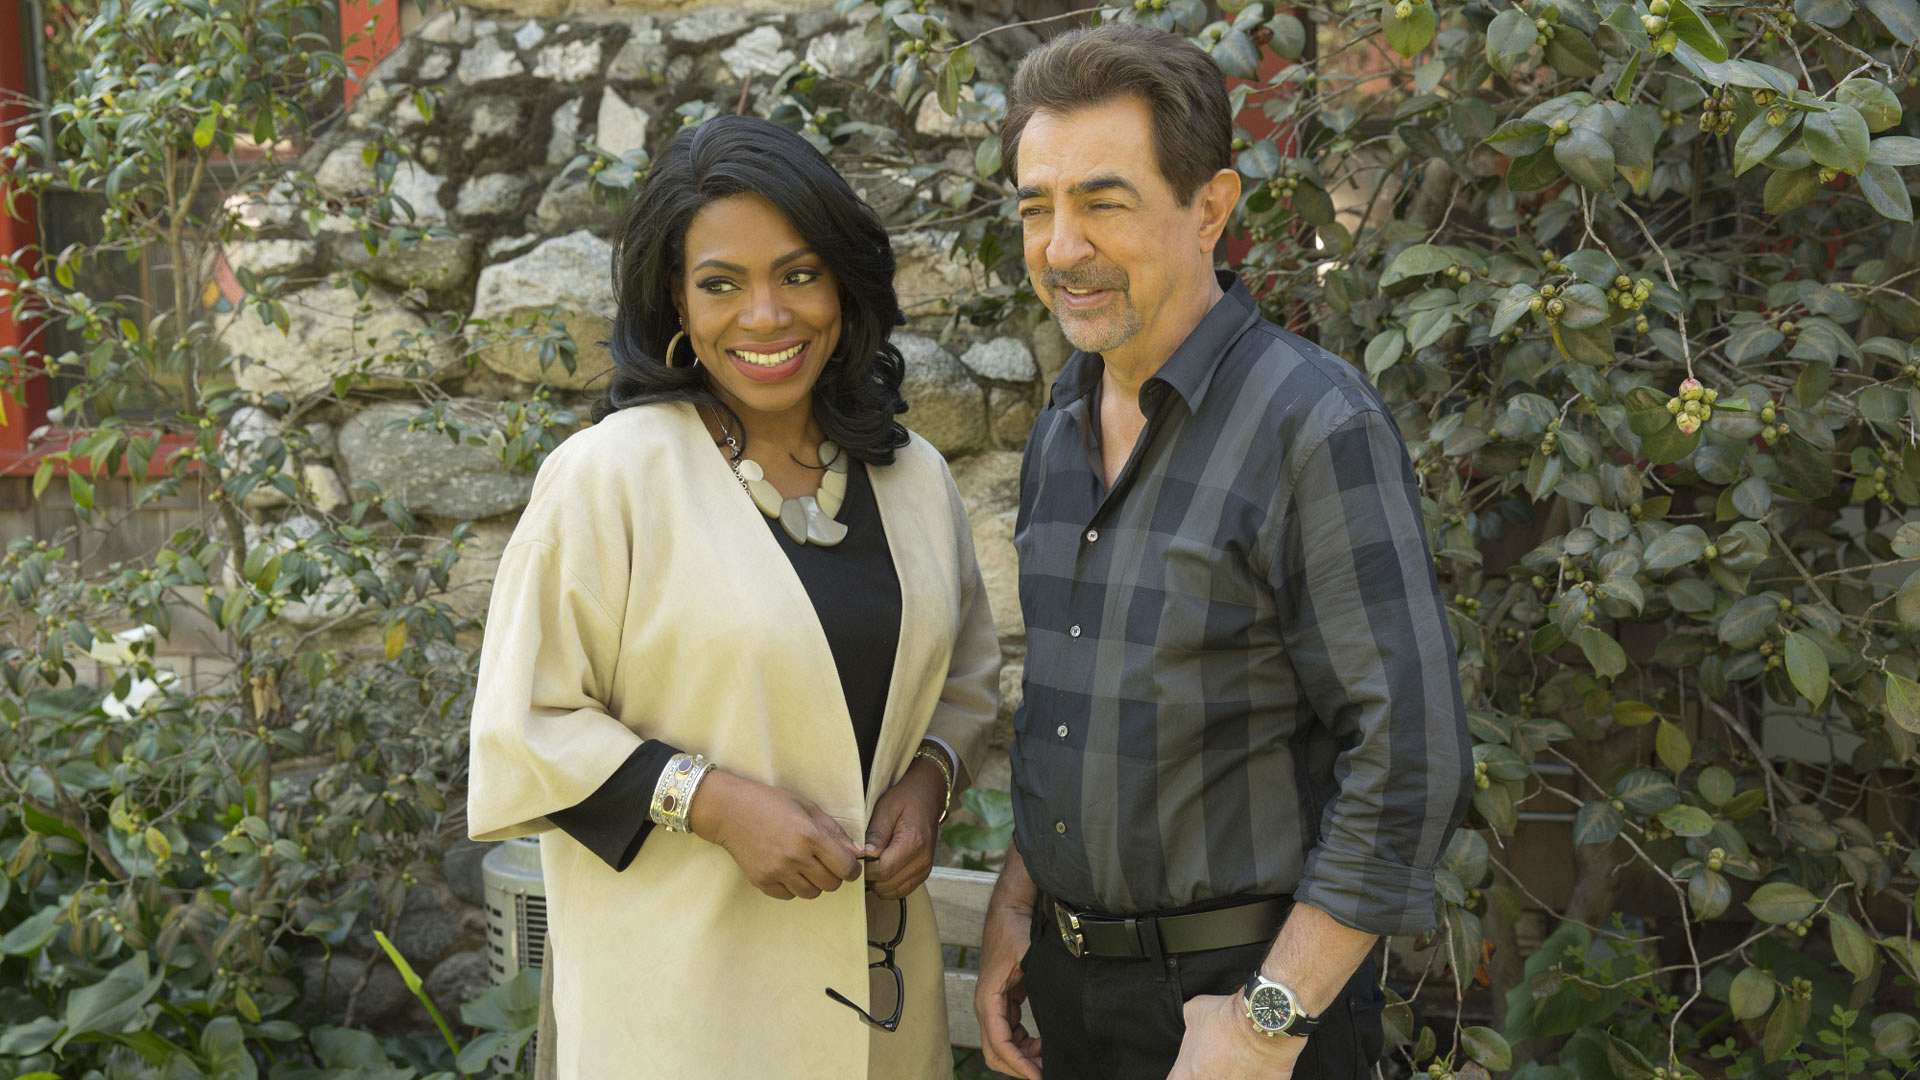 SSA David Rossi rekindled his relationship with his ex-wife on Criminal Minds.